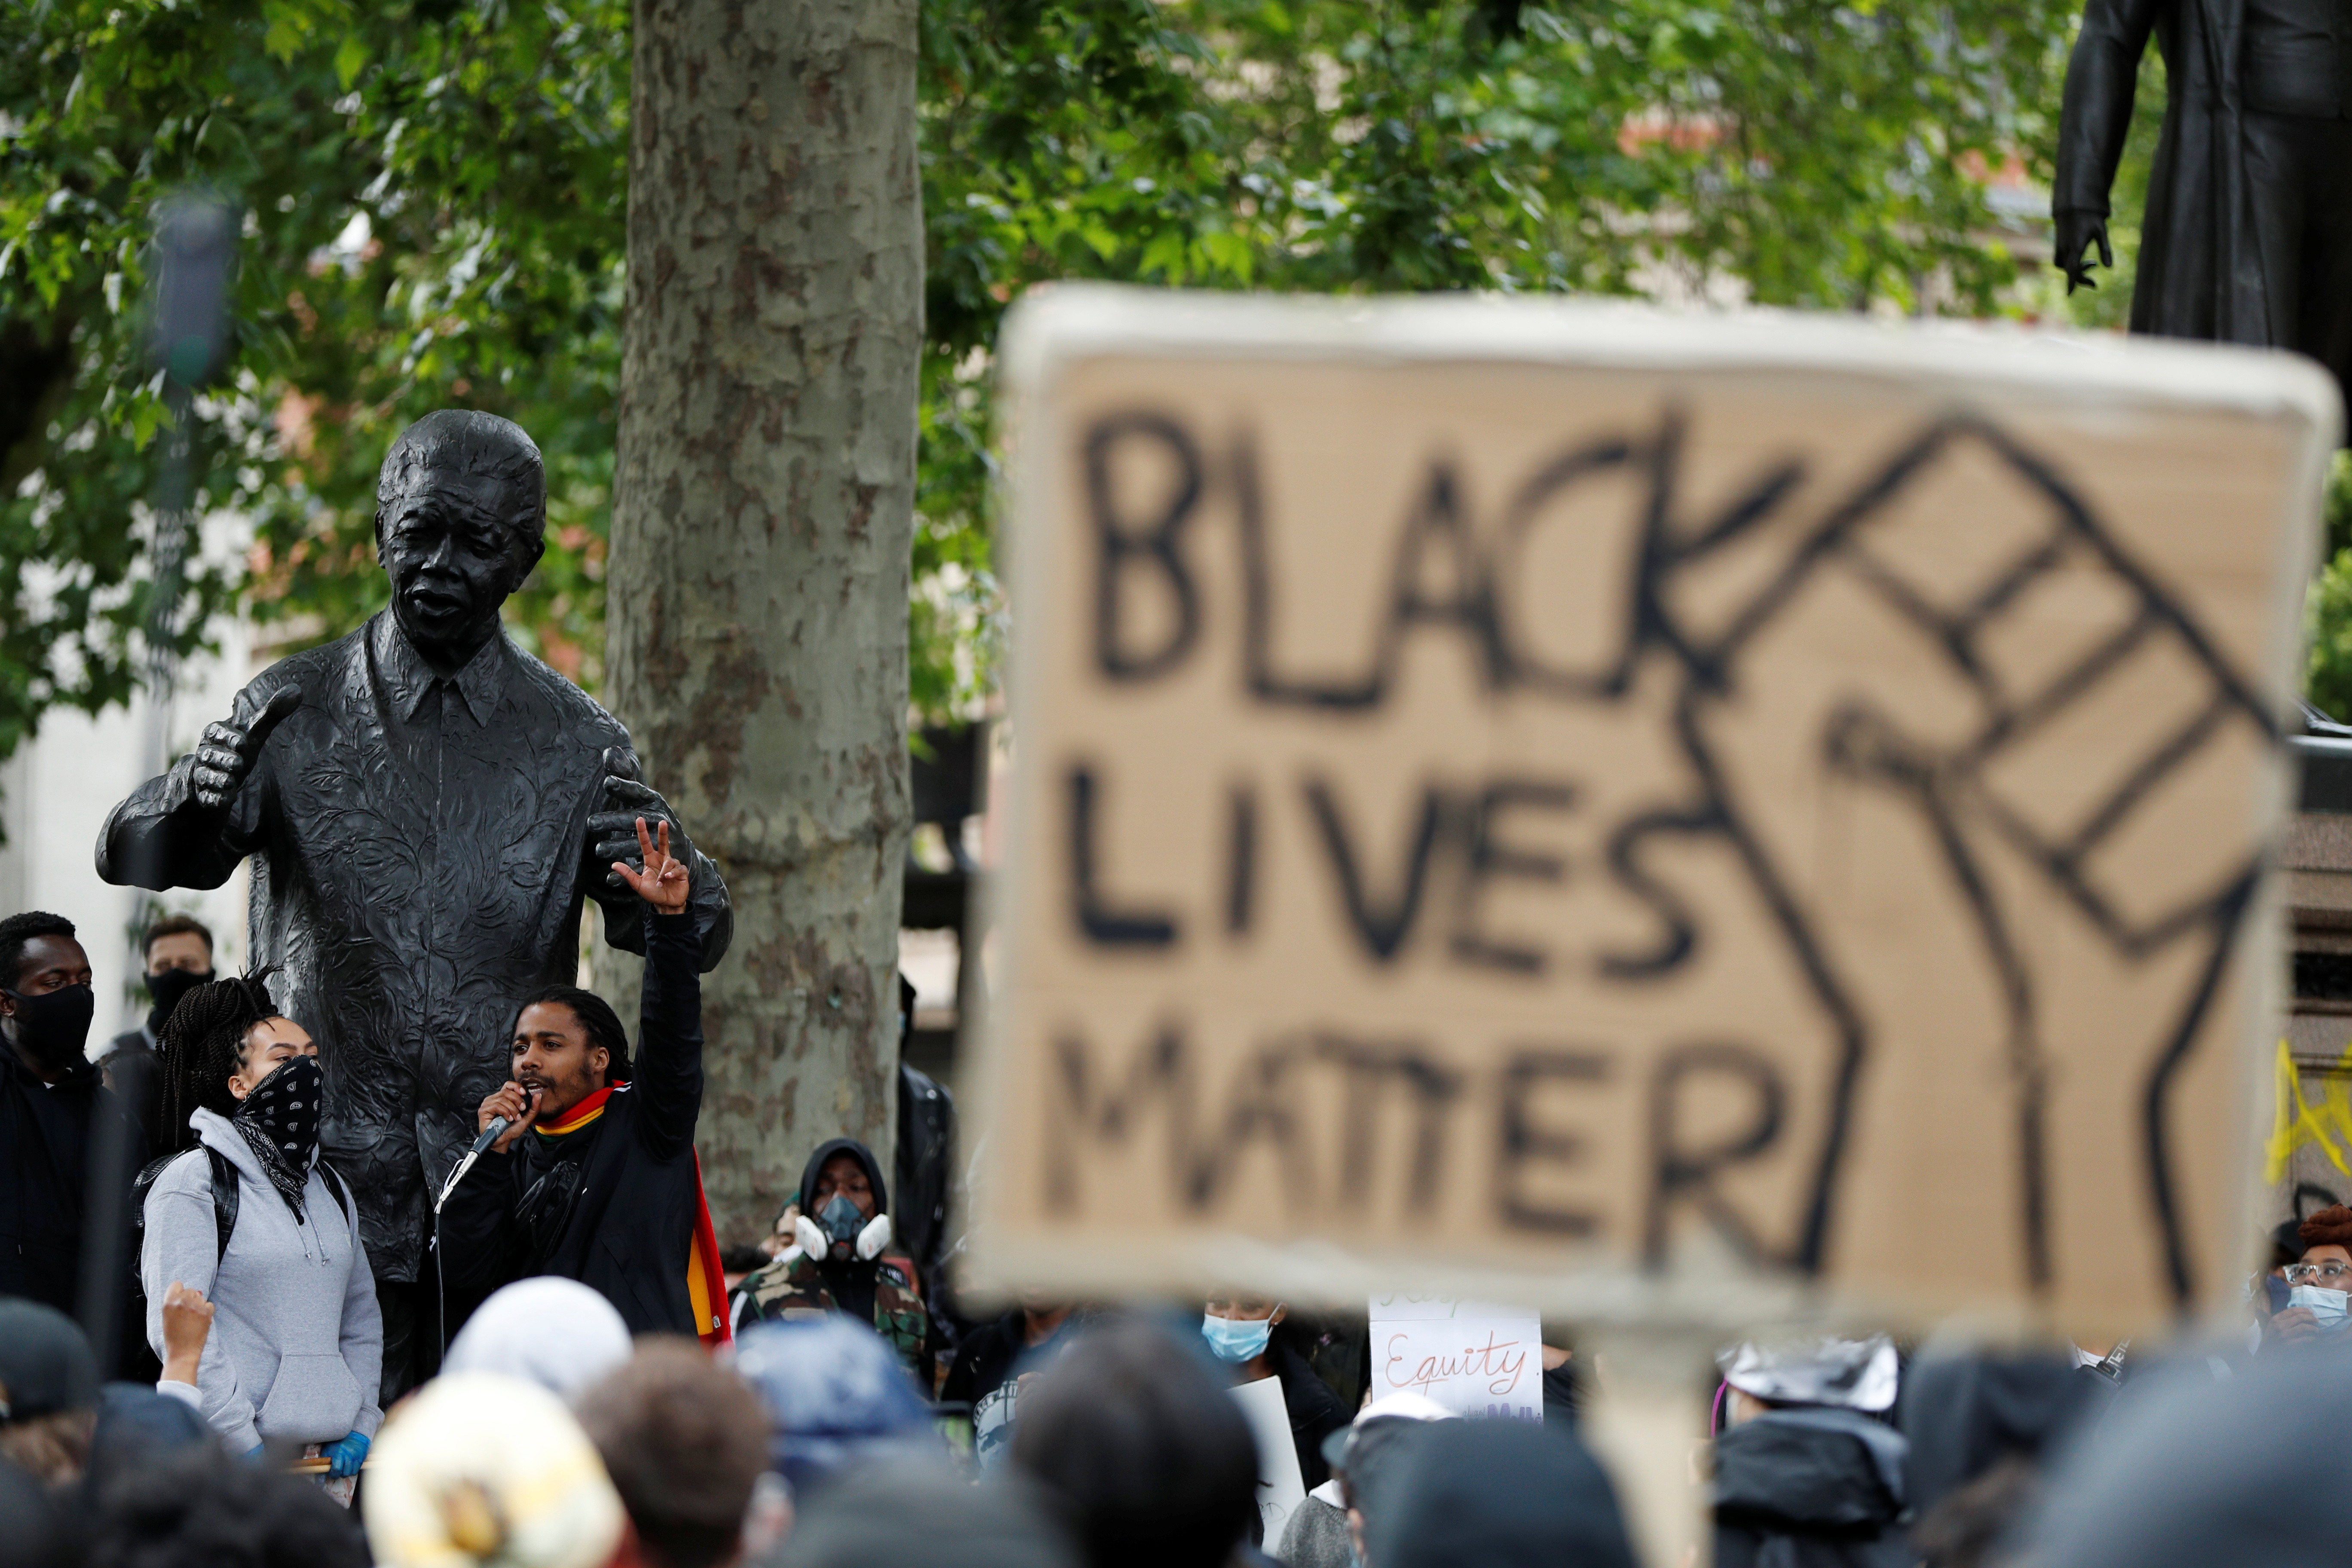 Demonstrators are seen infront of the Nelson Mandela statue during a Black Lives Matter protest in Parliament Square, following the death of George Floyd who died in police custody in Minneapolis, London, Britain, June 6, 2020. REUTERS/John Sibley - RC2S3H9AV1A4